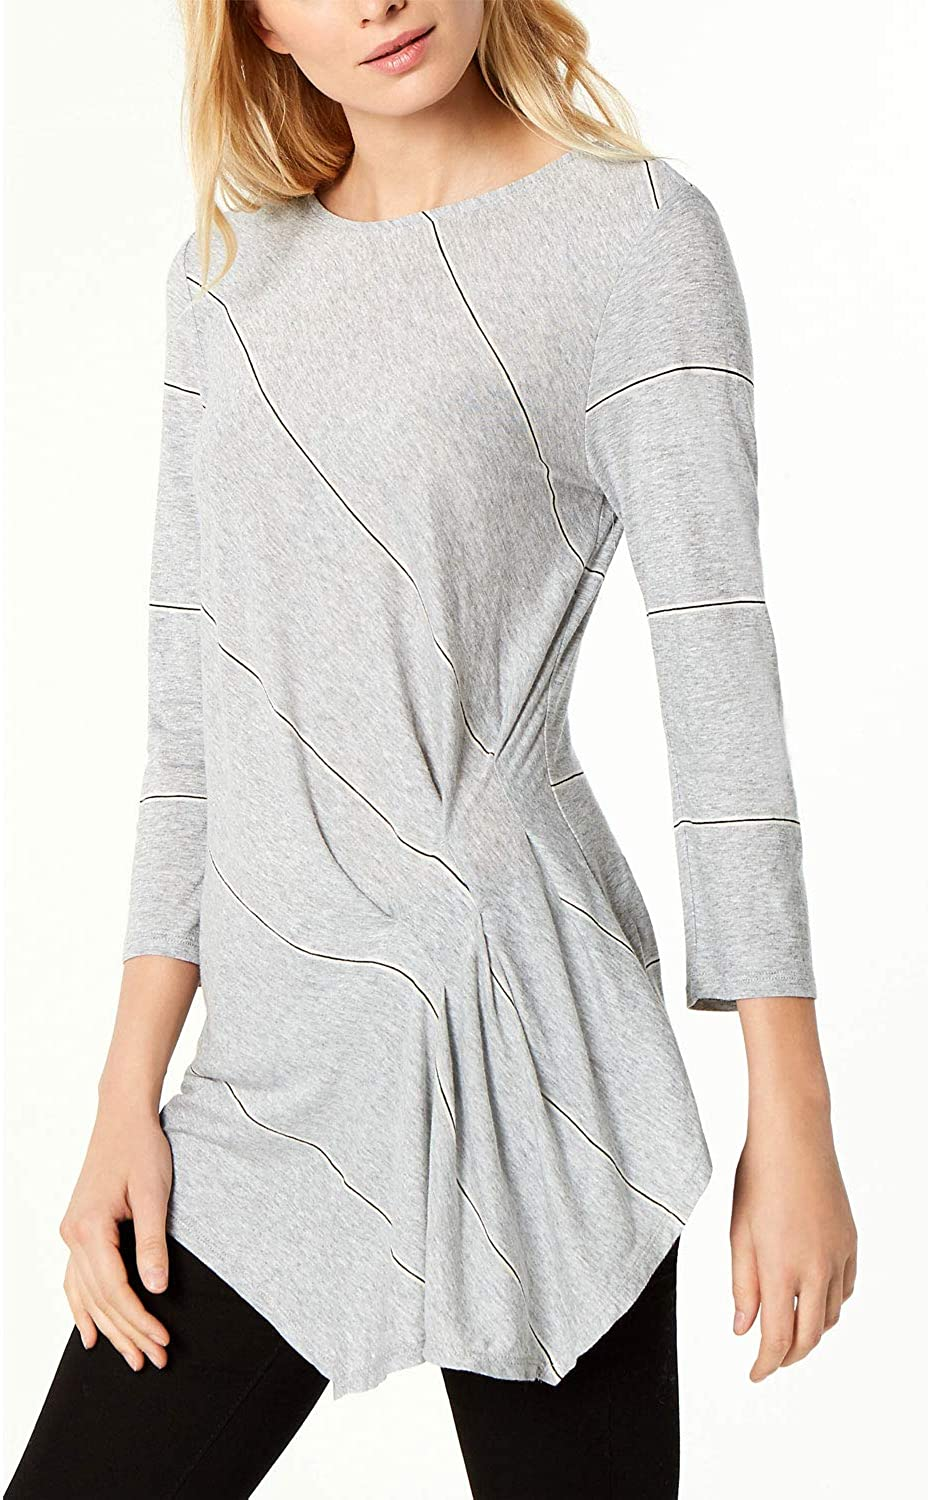 Vince Camuto Womens Striped Sheer Pullover Top